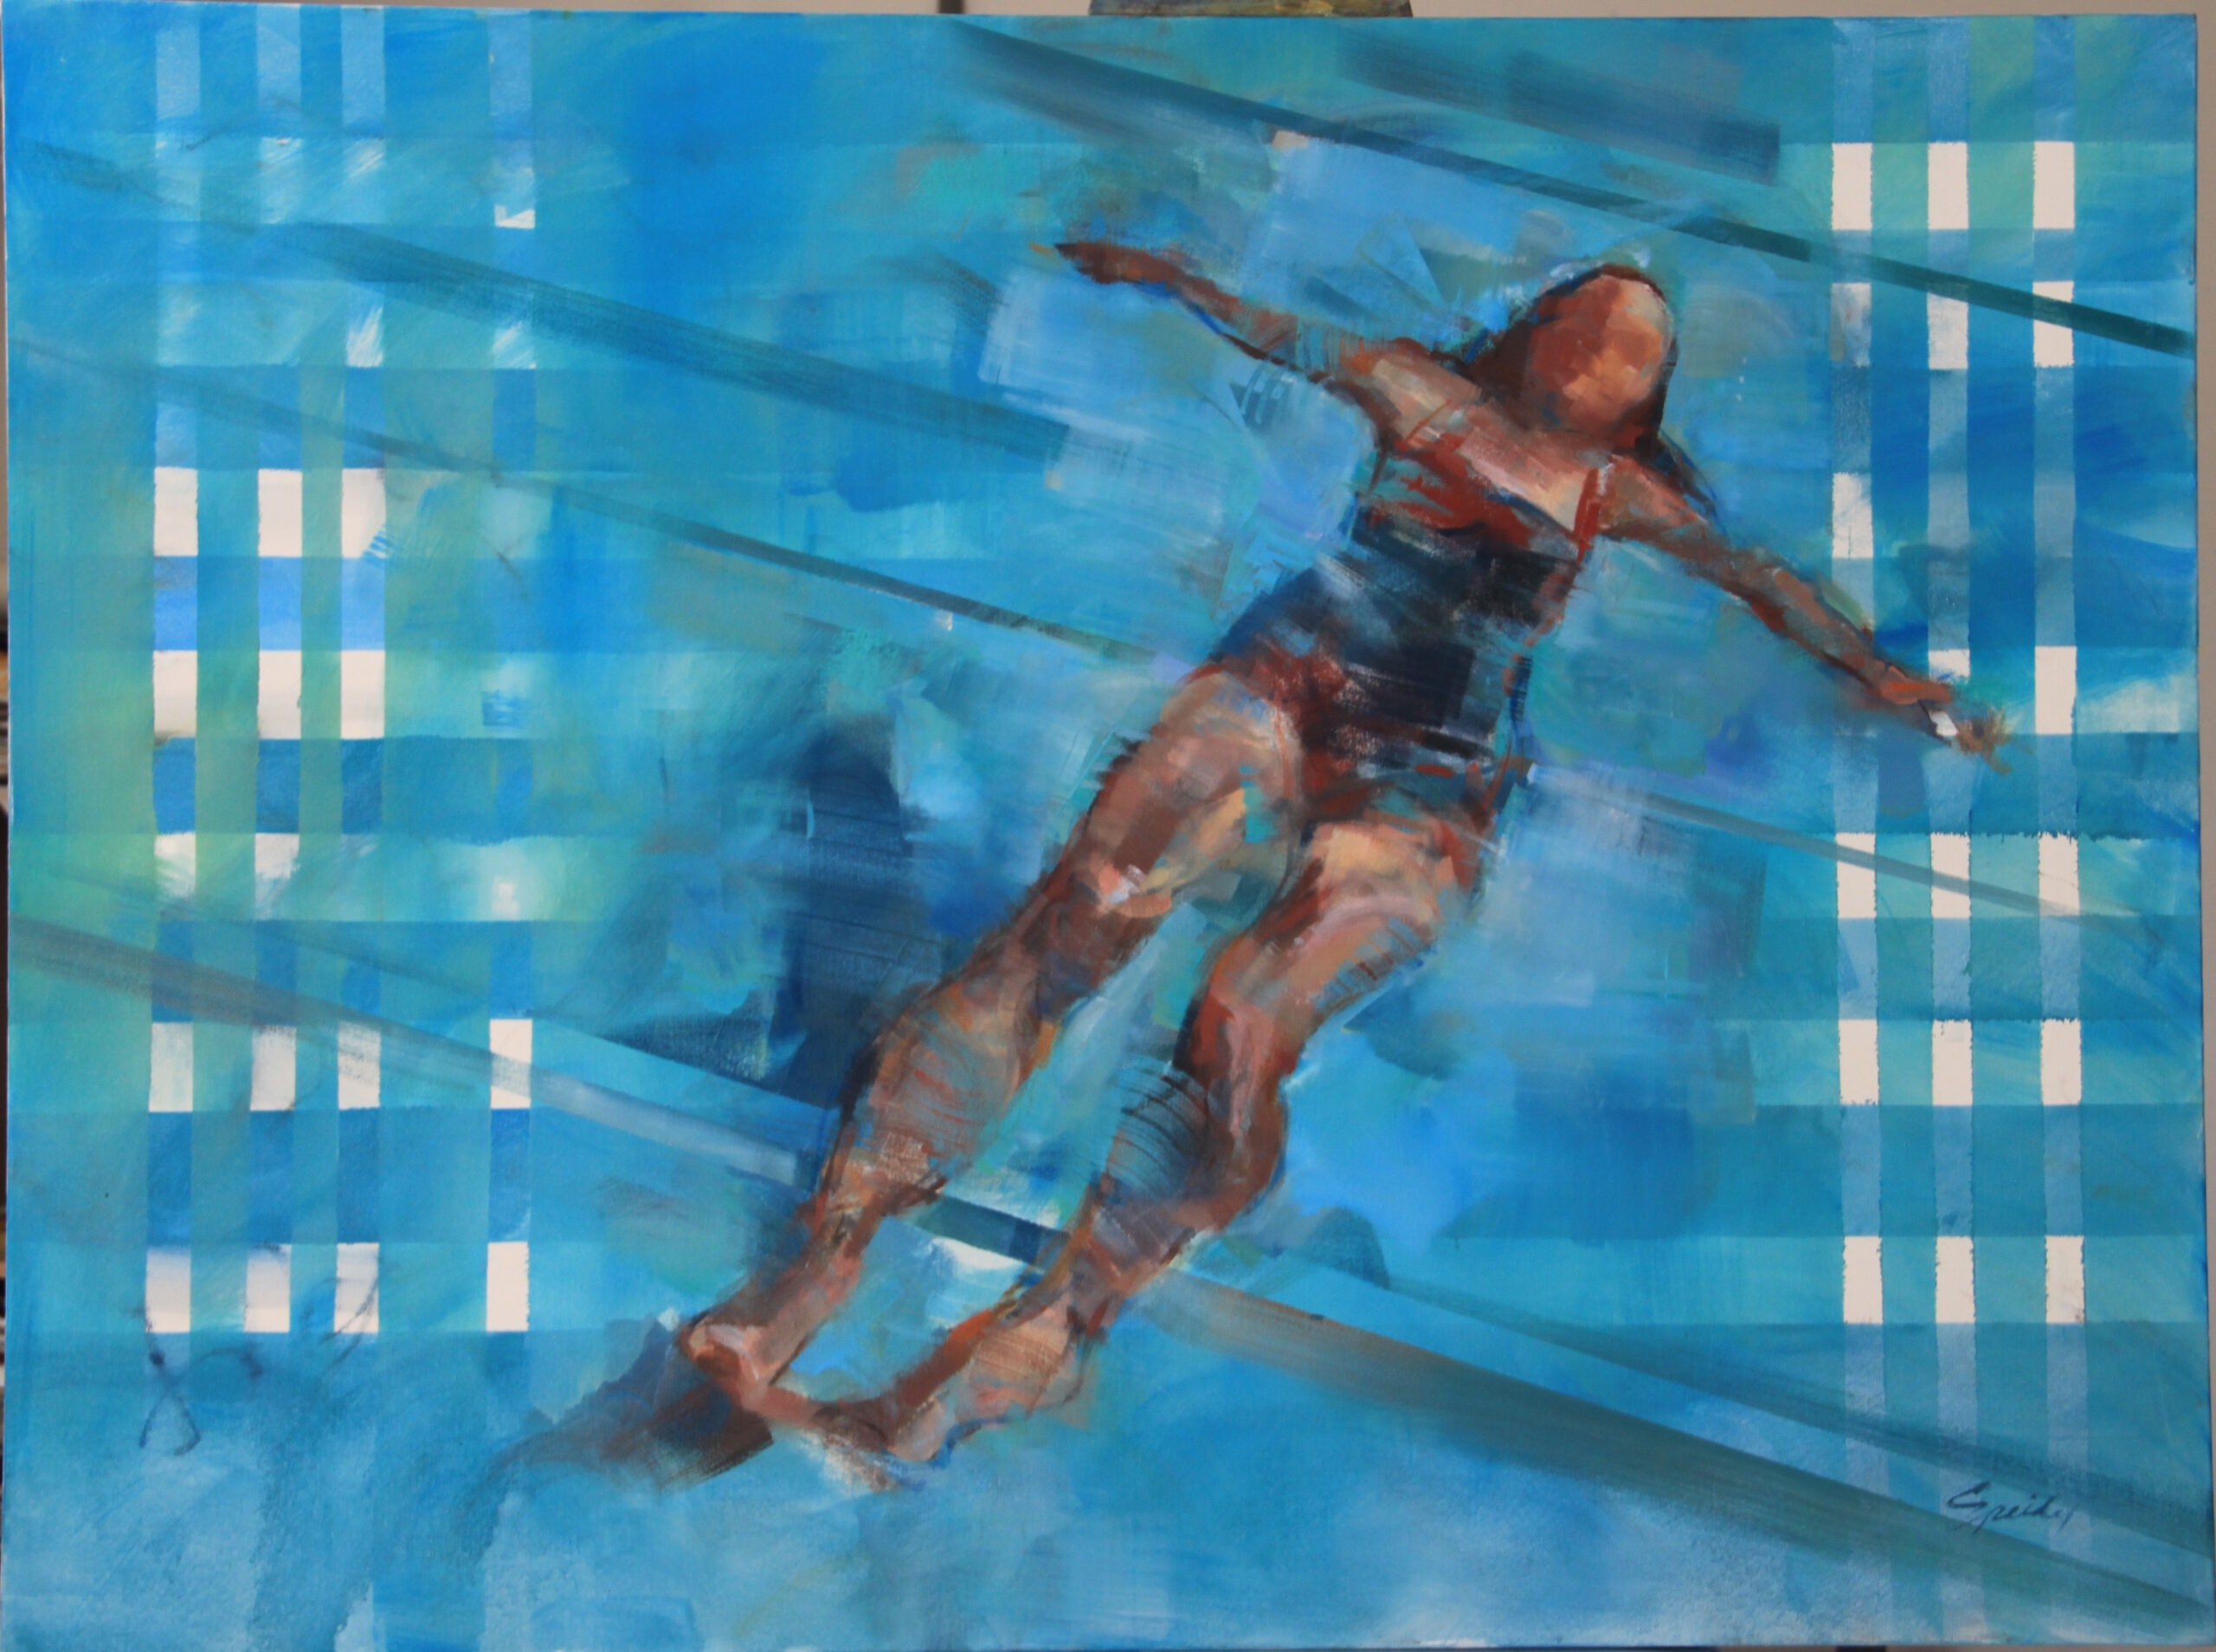 swimmer floating in a pool